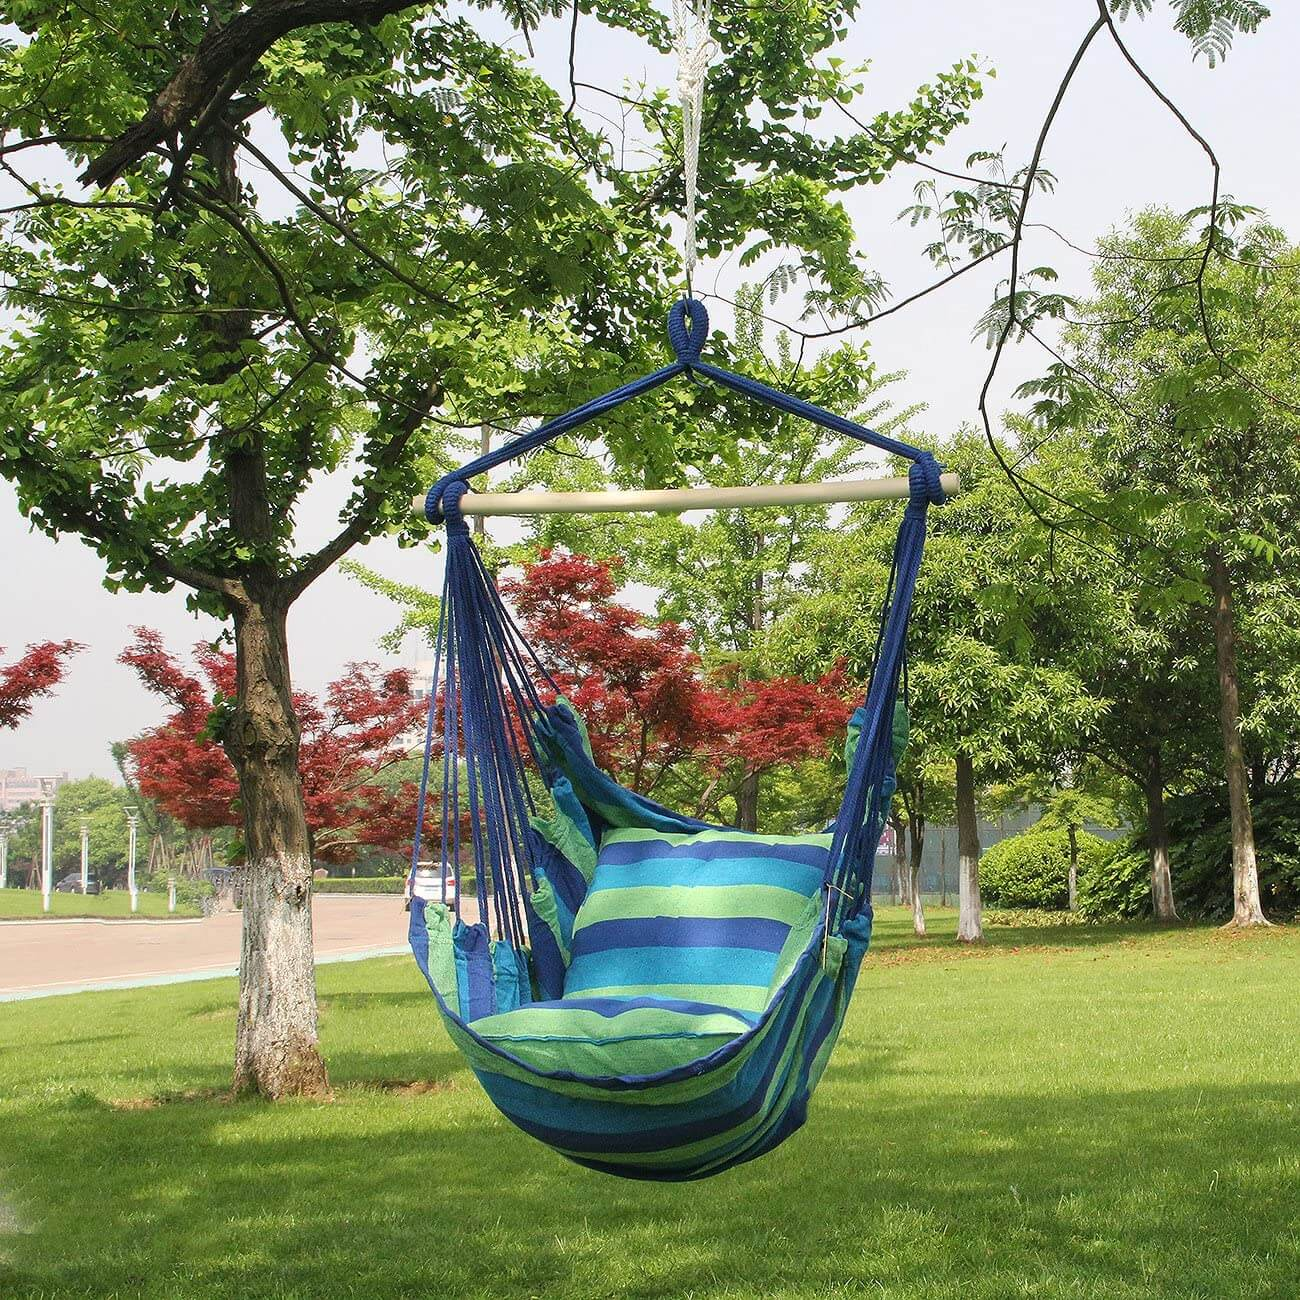 Best Hammock Chairs in 2020 Reviews & Buyer's Guide